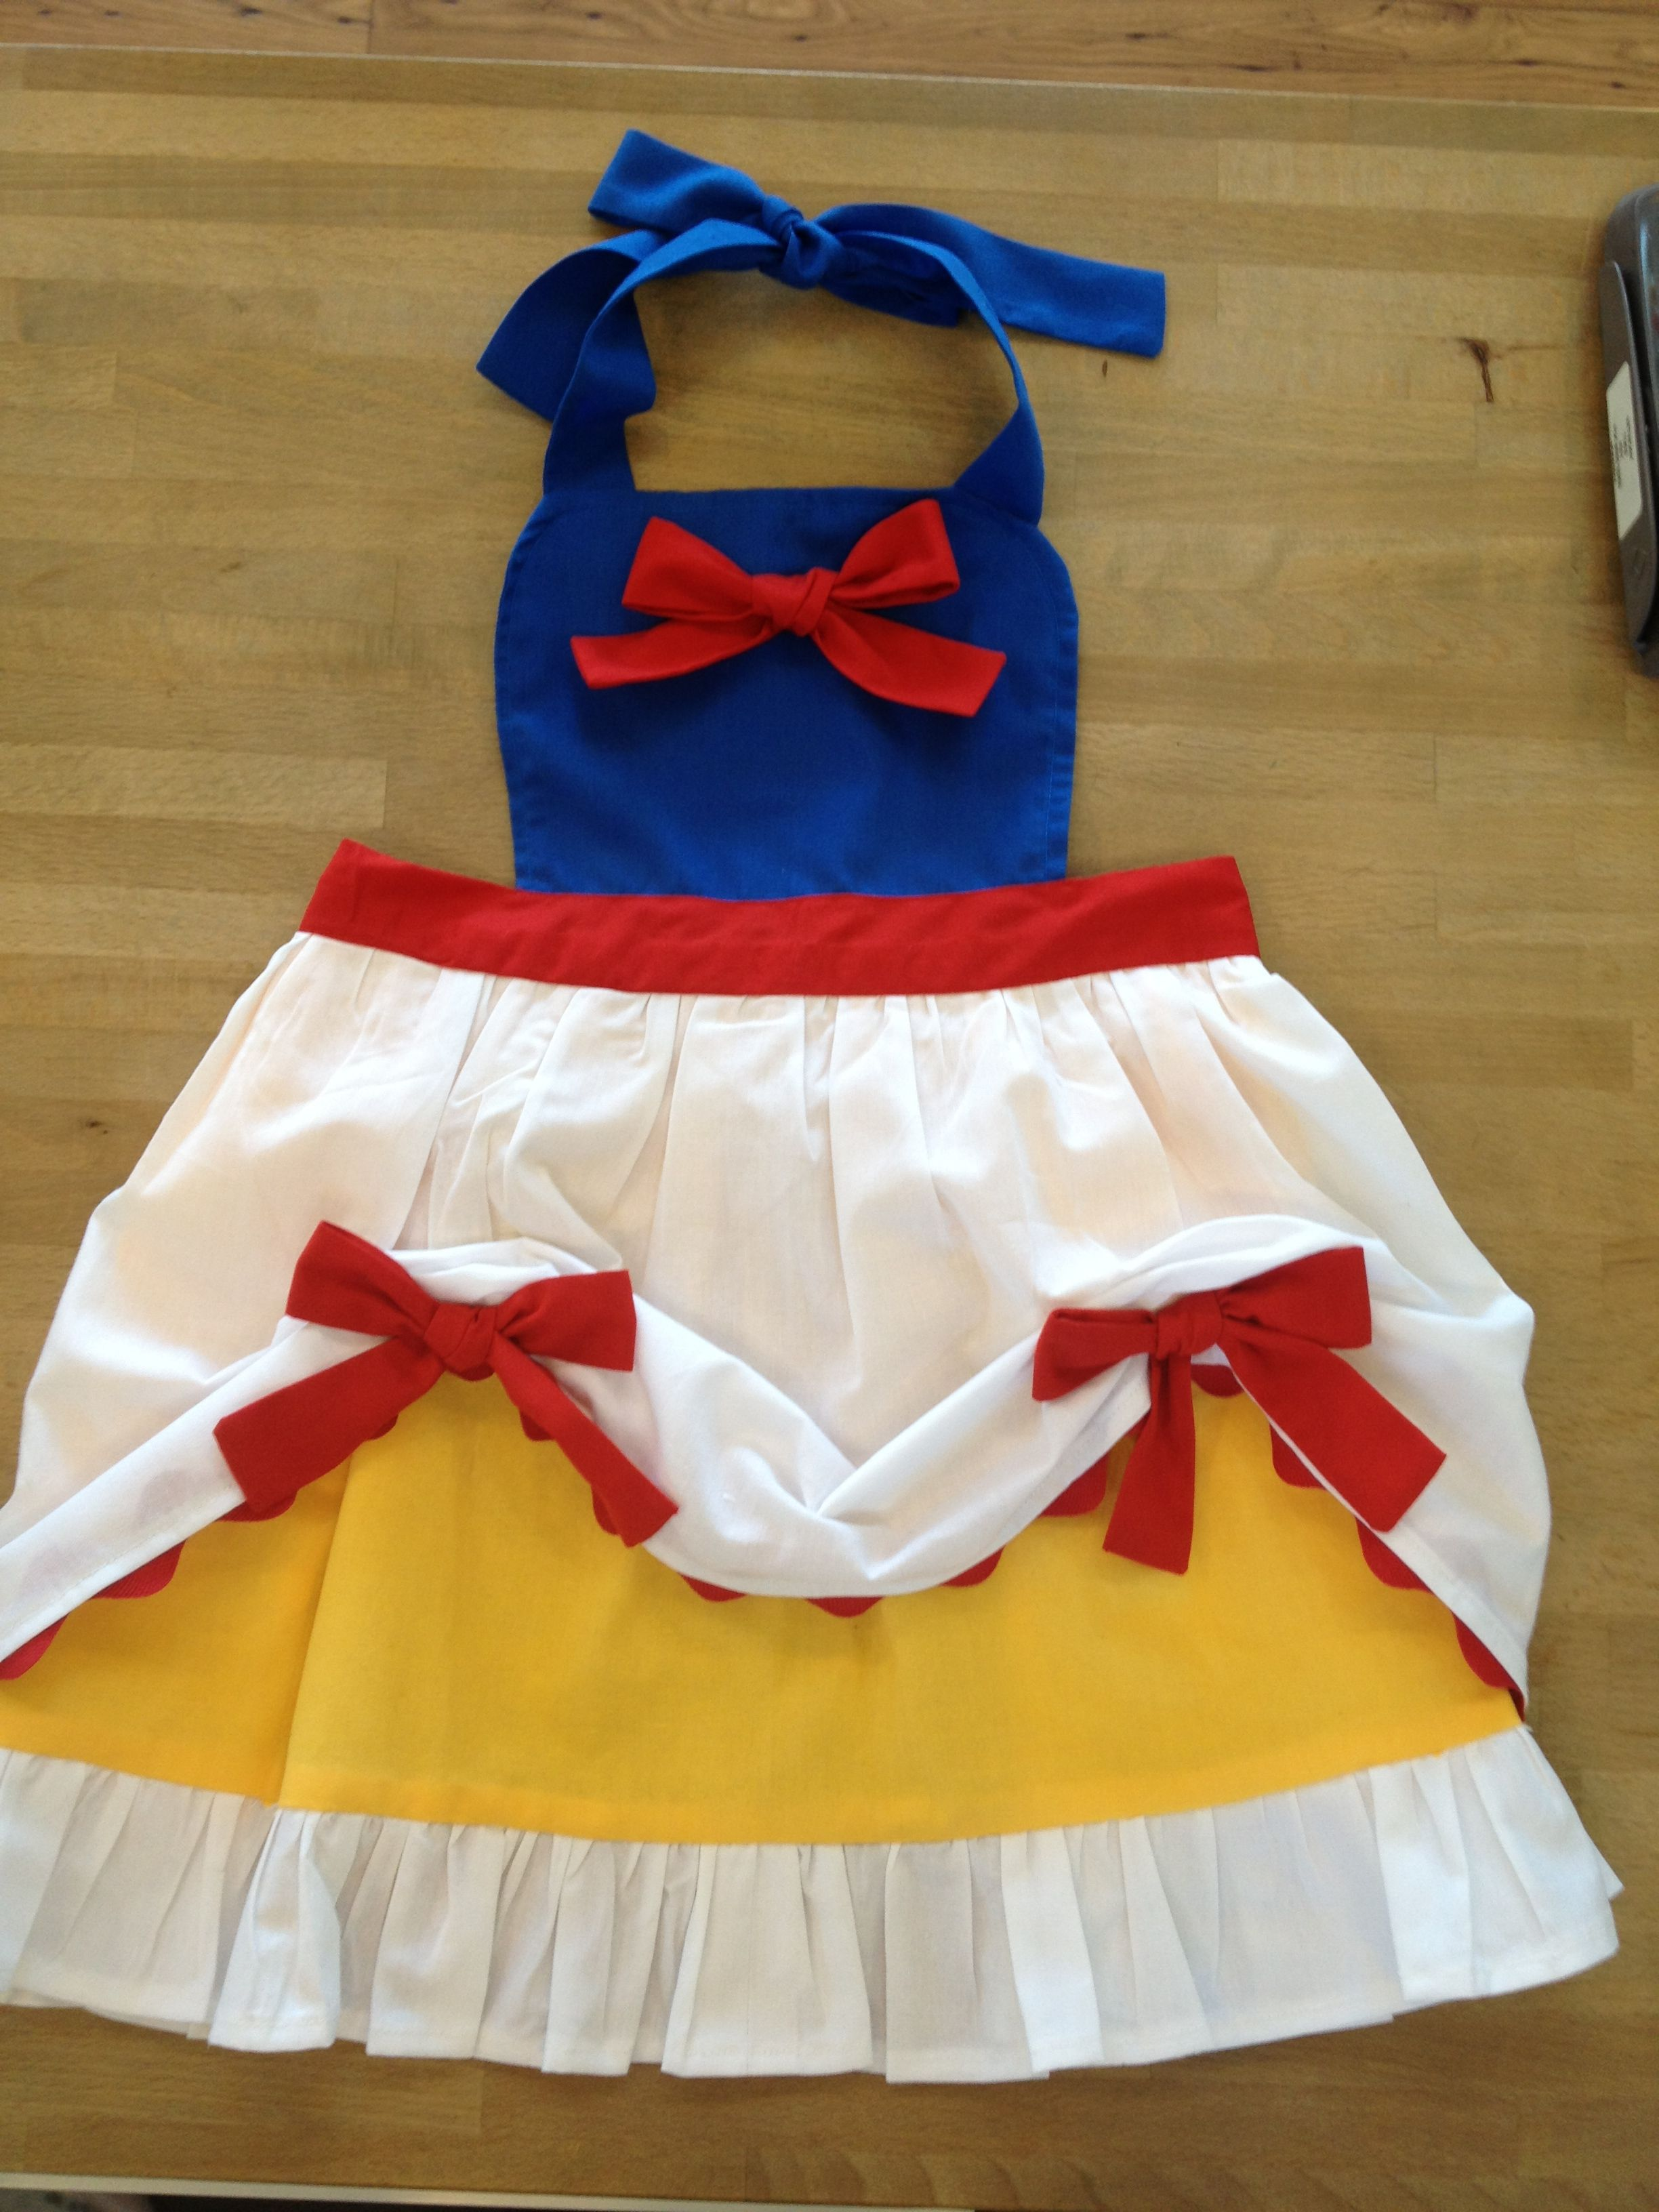 White apron belle - Change The Color From Snow White Colors And Turn Into Belle Apron